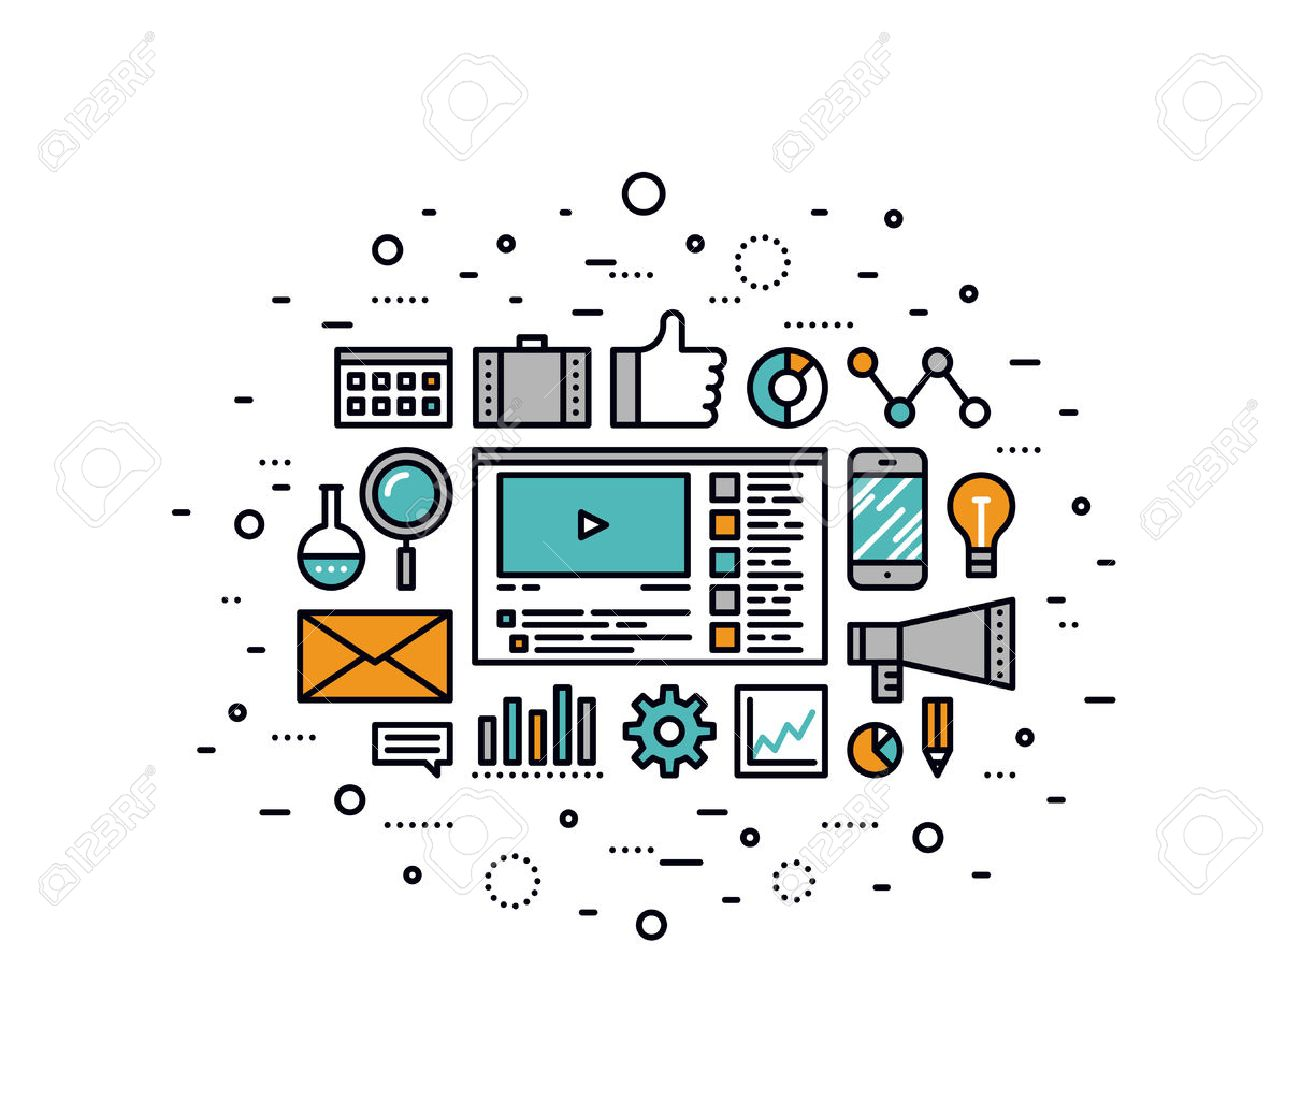 Thin line flat design of social media marketing, online business solution, viral video production and promotion, digital strategy idea. Modern vector illustration concept, isolated on white background. Stock Vector - 43550581